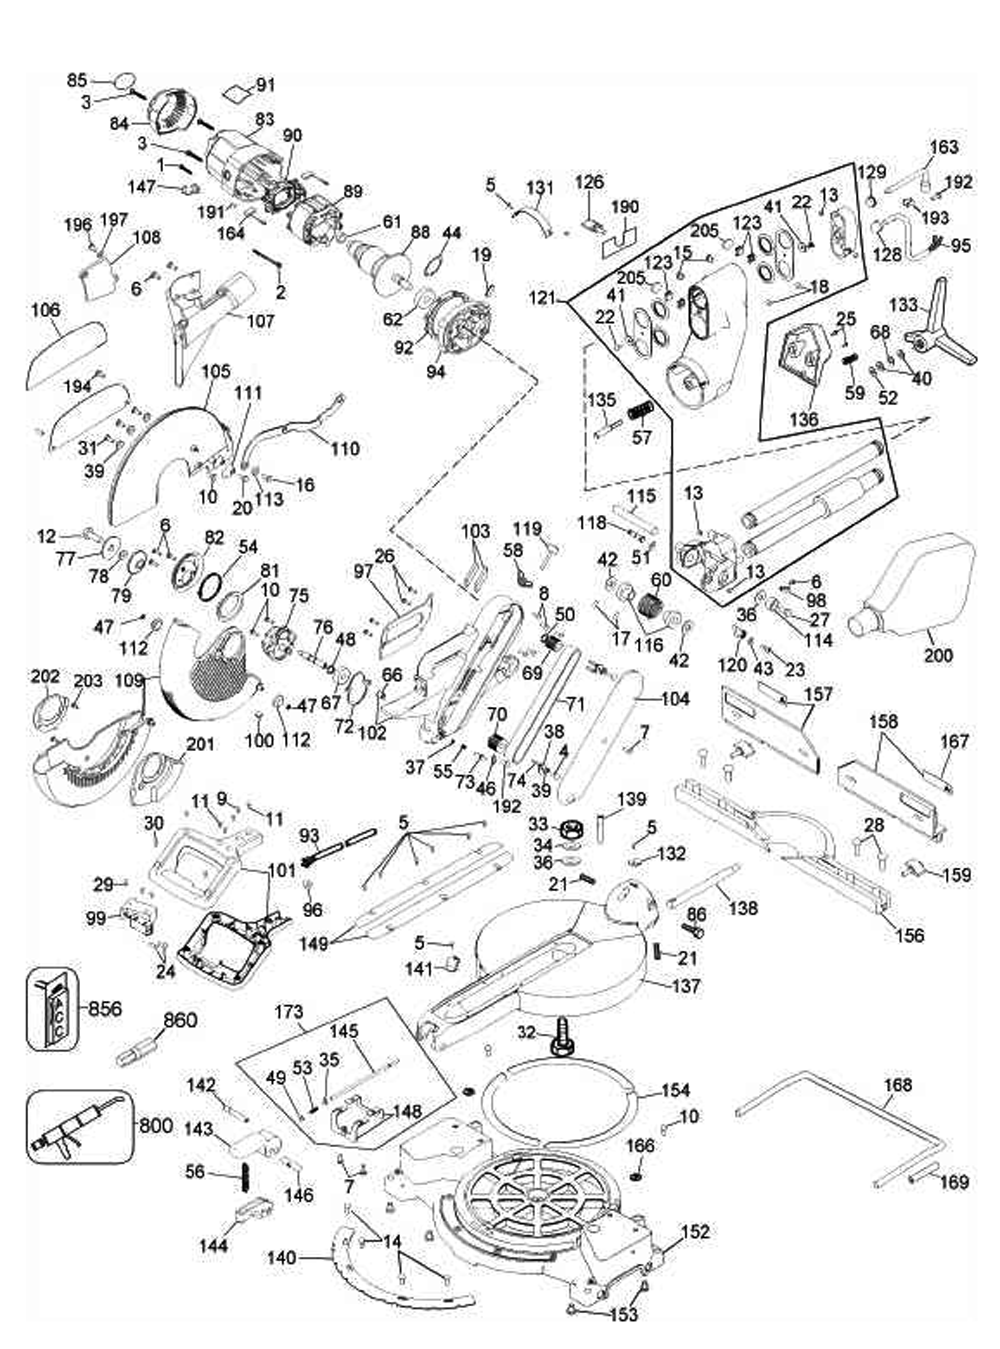 Dewalt Dw705 Wiring Diagram : 27 Wiring Diagram Images